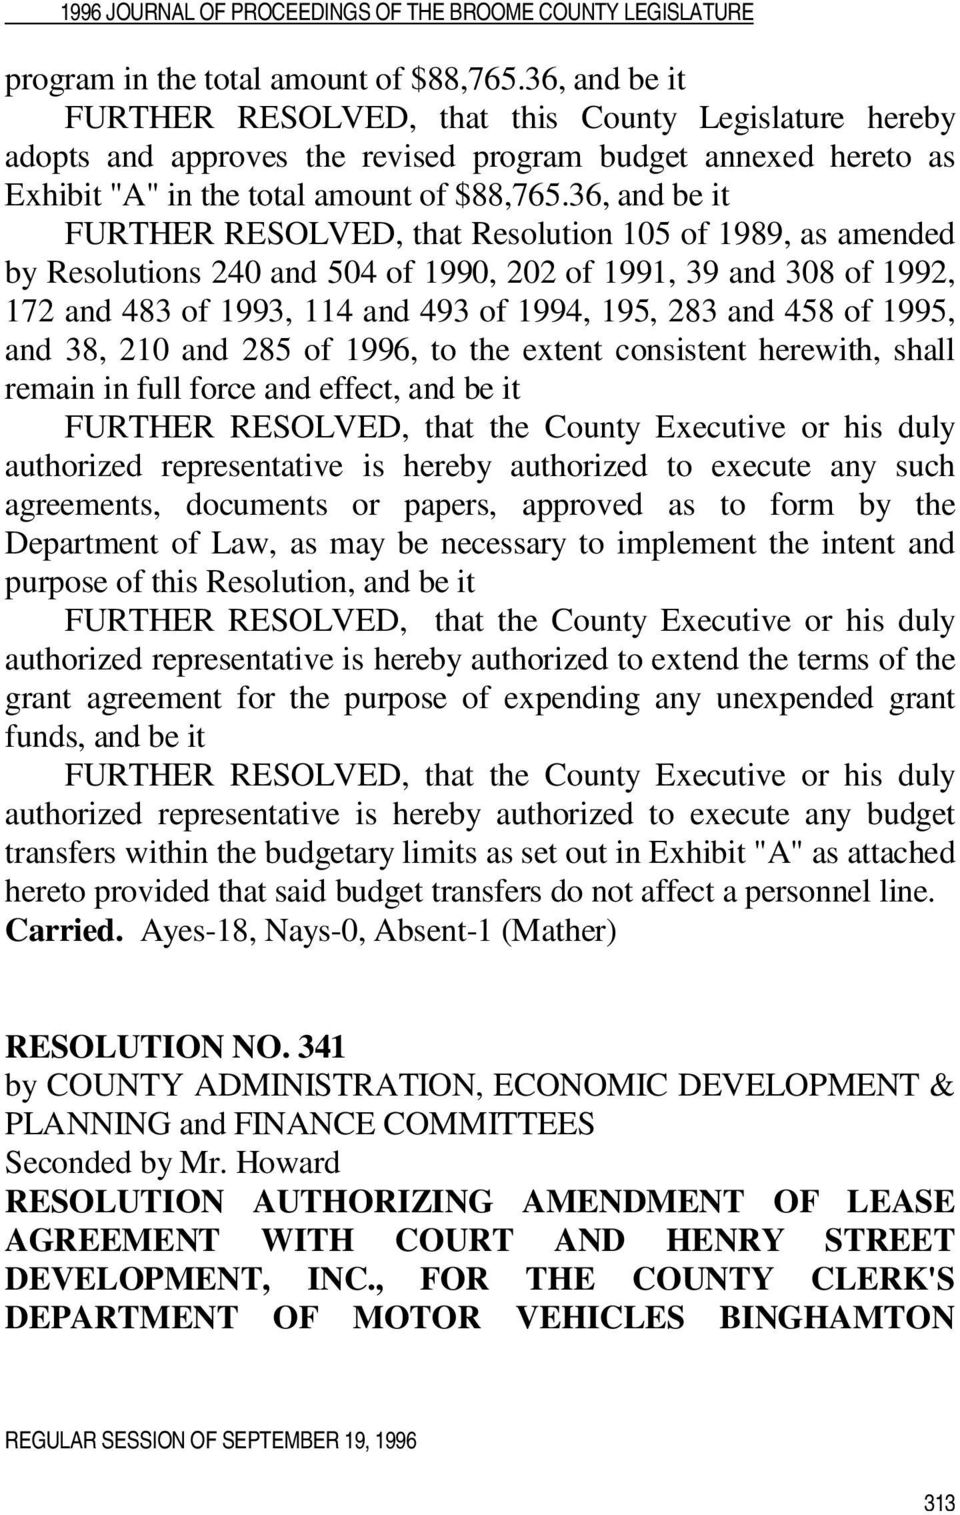 36, and be it FURTHER RESOLVED, that Resolution 105 of 1989, as amended by Resolutions 240 and 504 of 1990, 202 of 1991, 39 and 308 of 1992, 172 and 483 of 1993, 114 and 493 of 1994, 195, 283 and 458